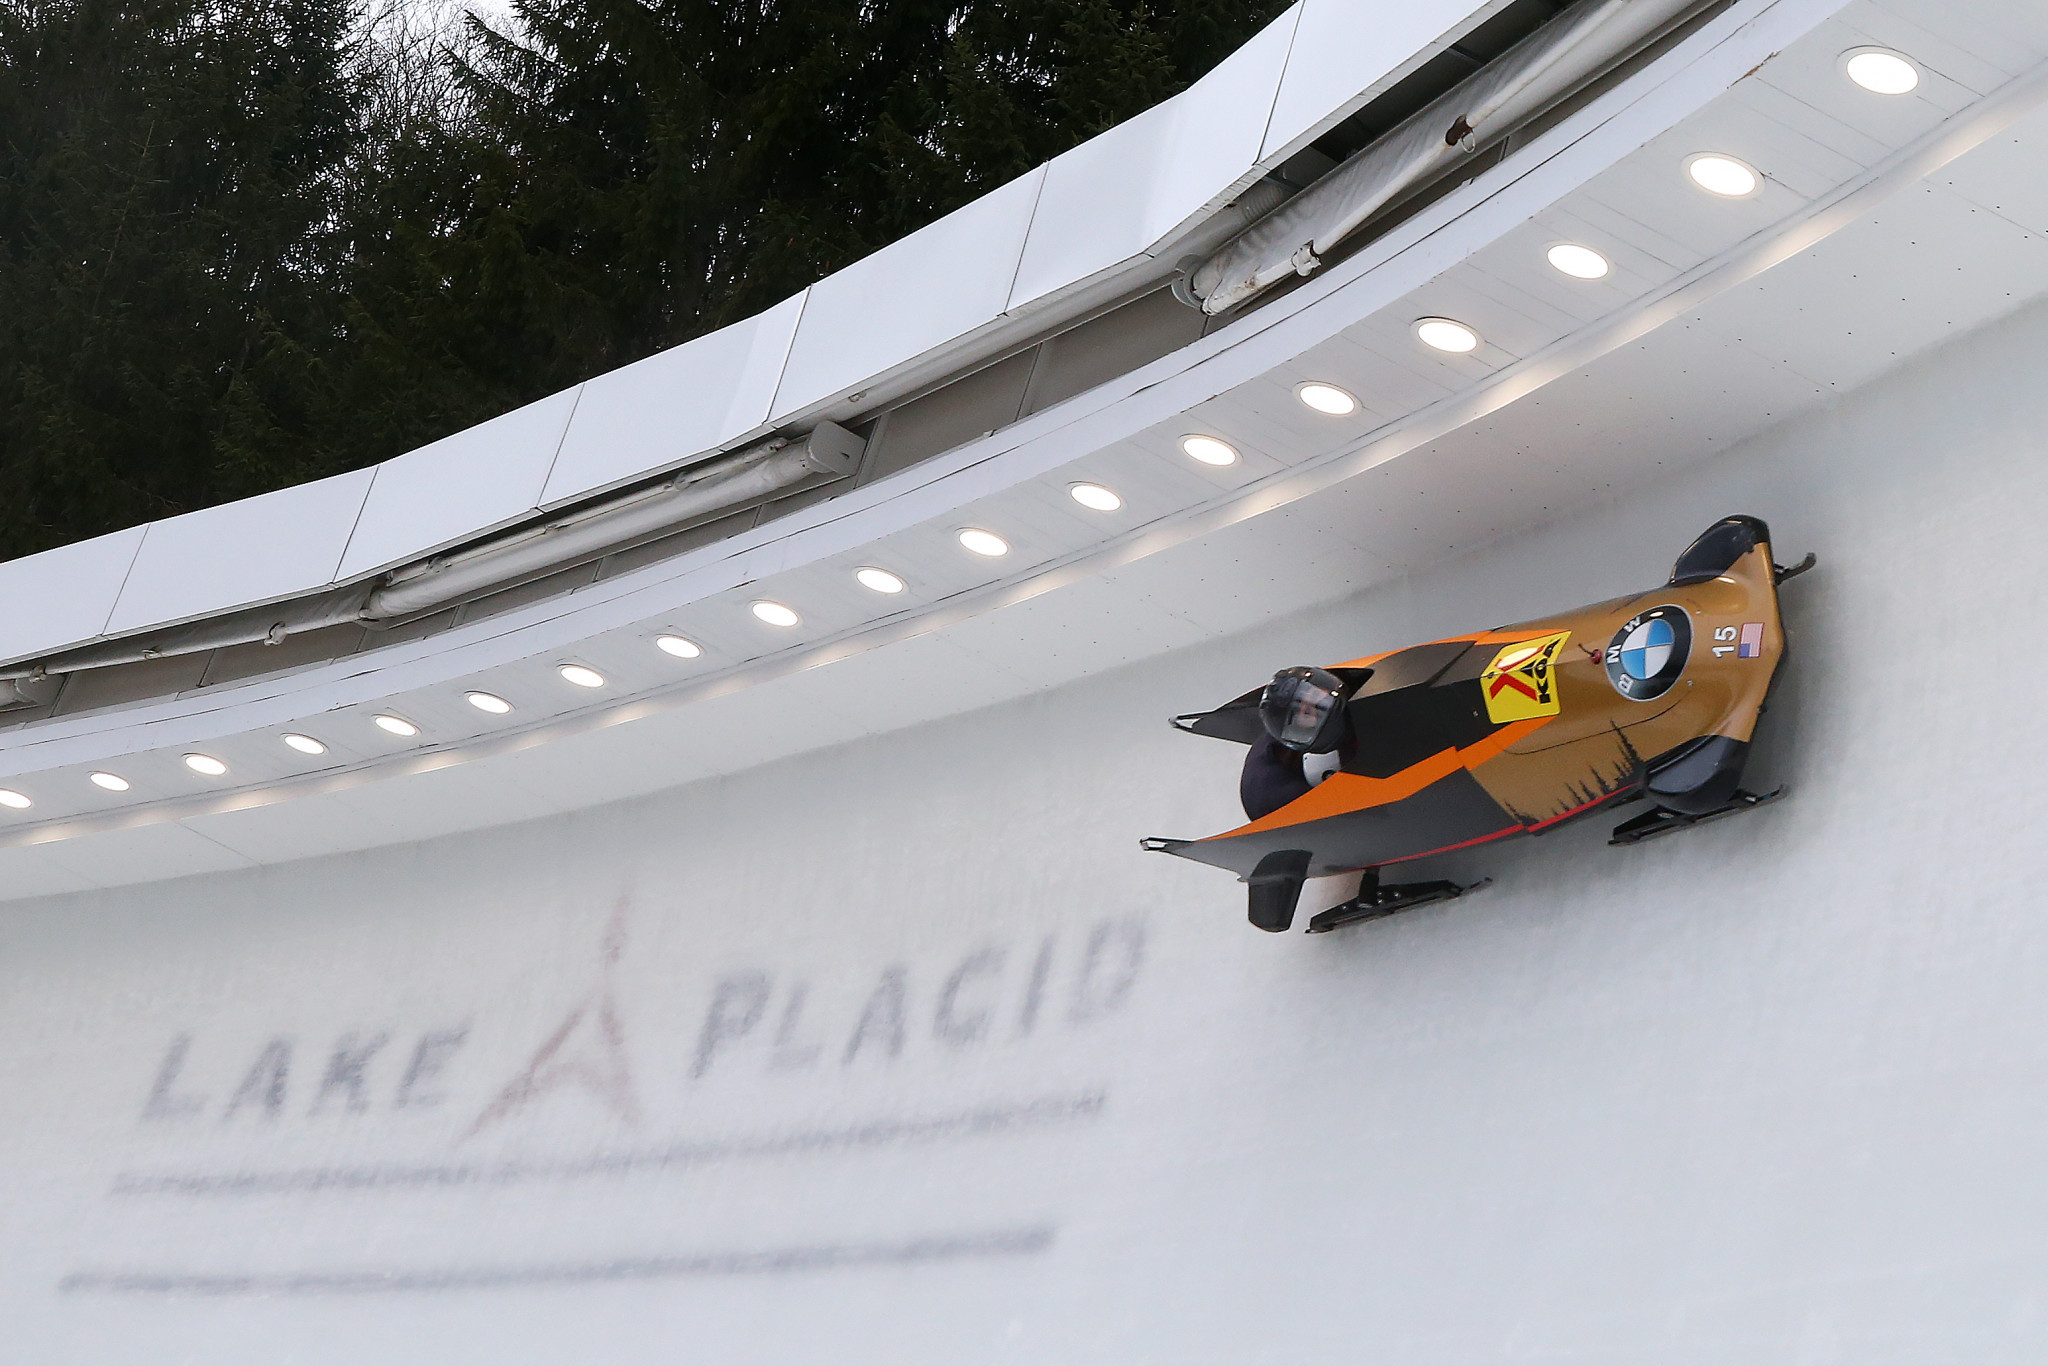 The United States' bobsleigh and skeleton teams are due to begin training in Lake Placid next month ©Getty Images